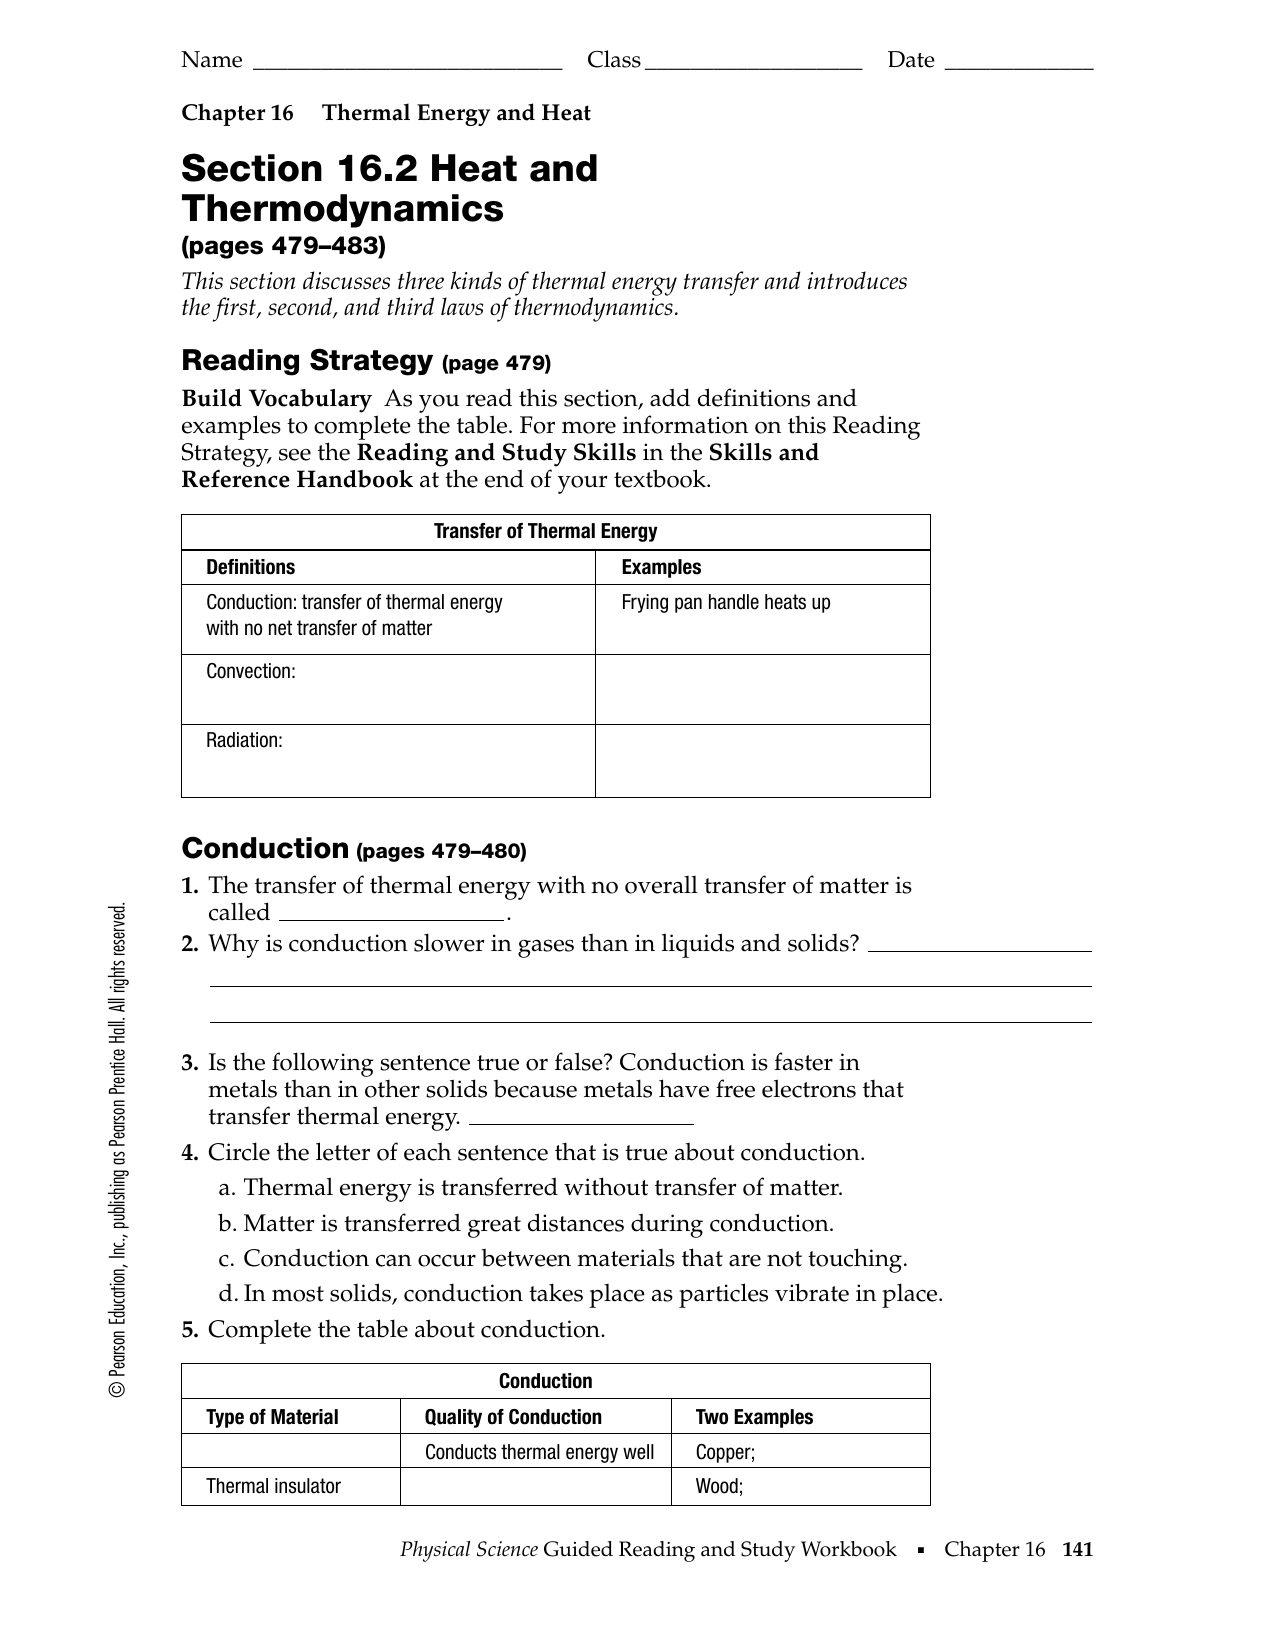 Section 16 2 Heat And Thermodynamics Worksheet Answer Key ...